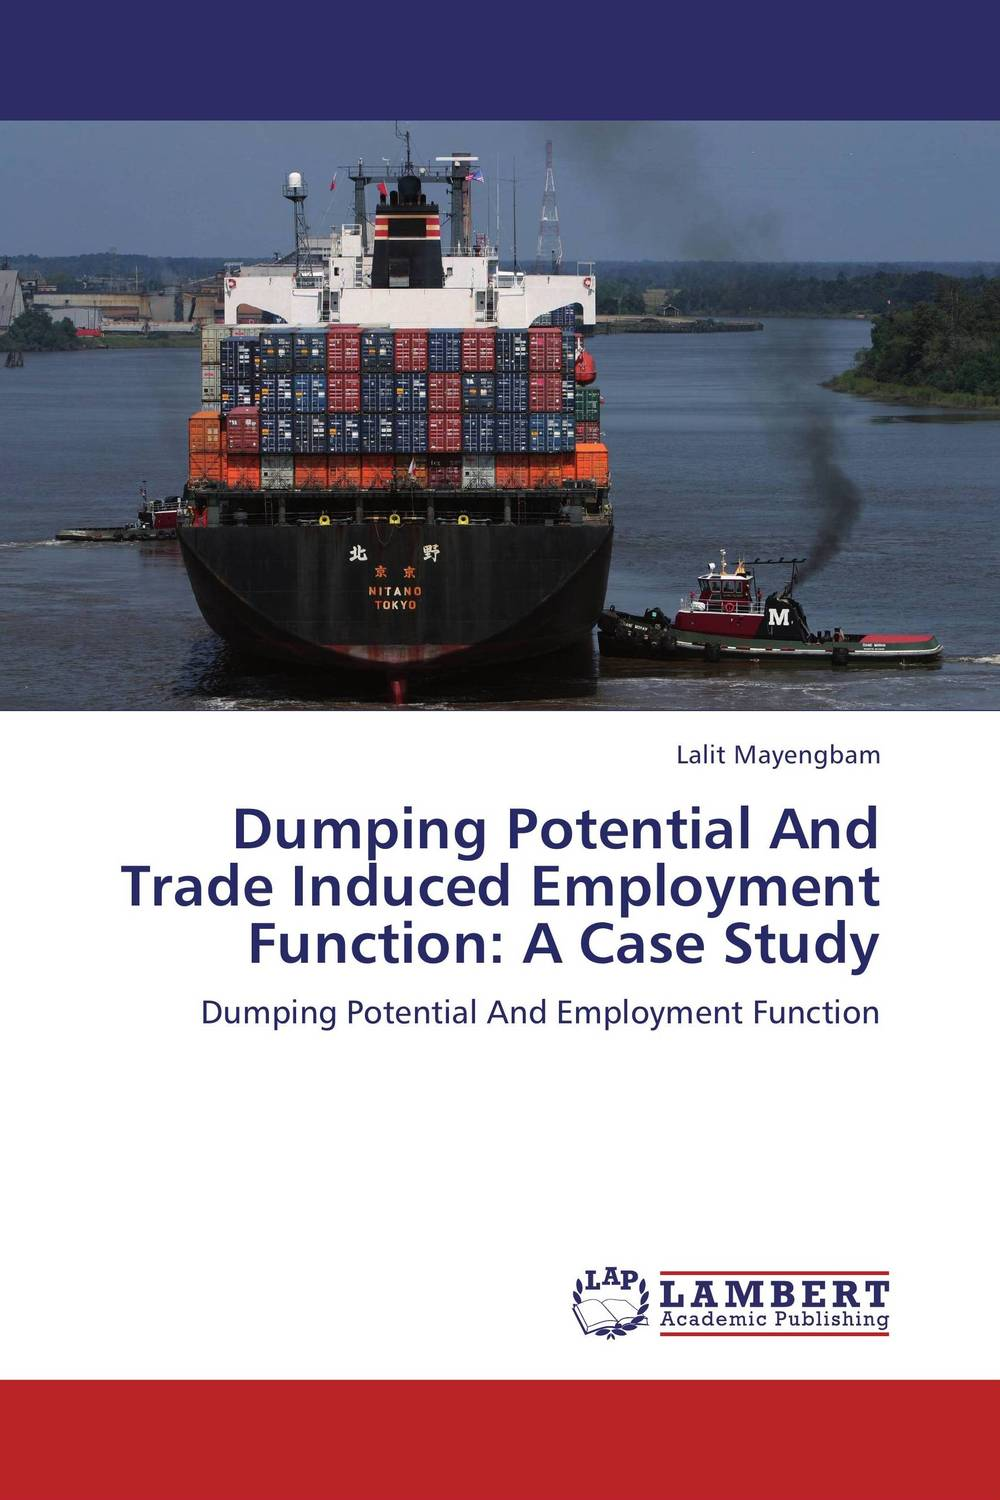 Dumping Potential And Trade Induced Employment Function: A Case Study